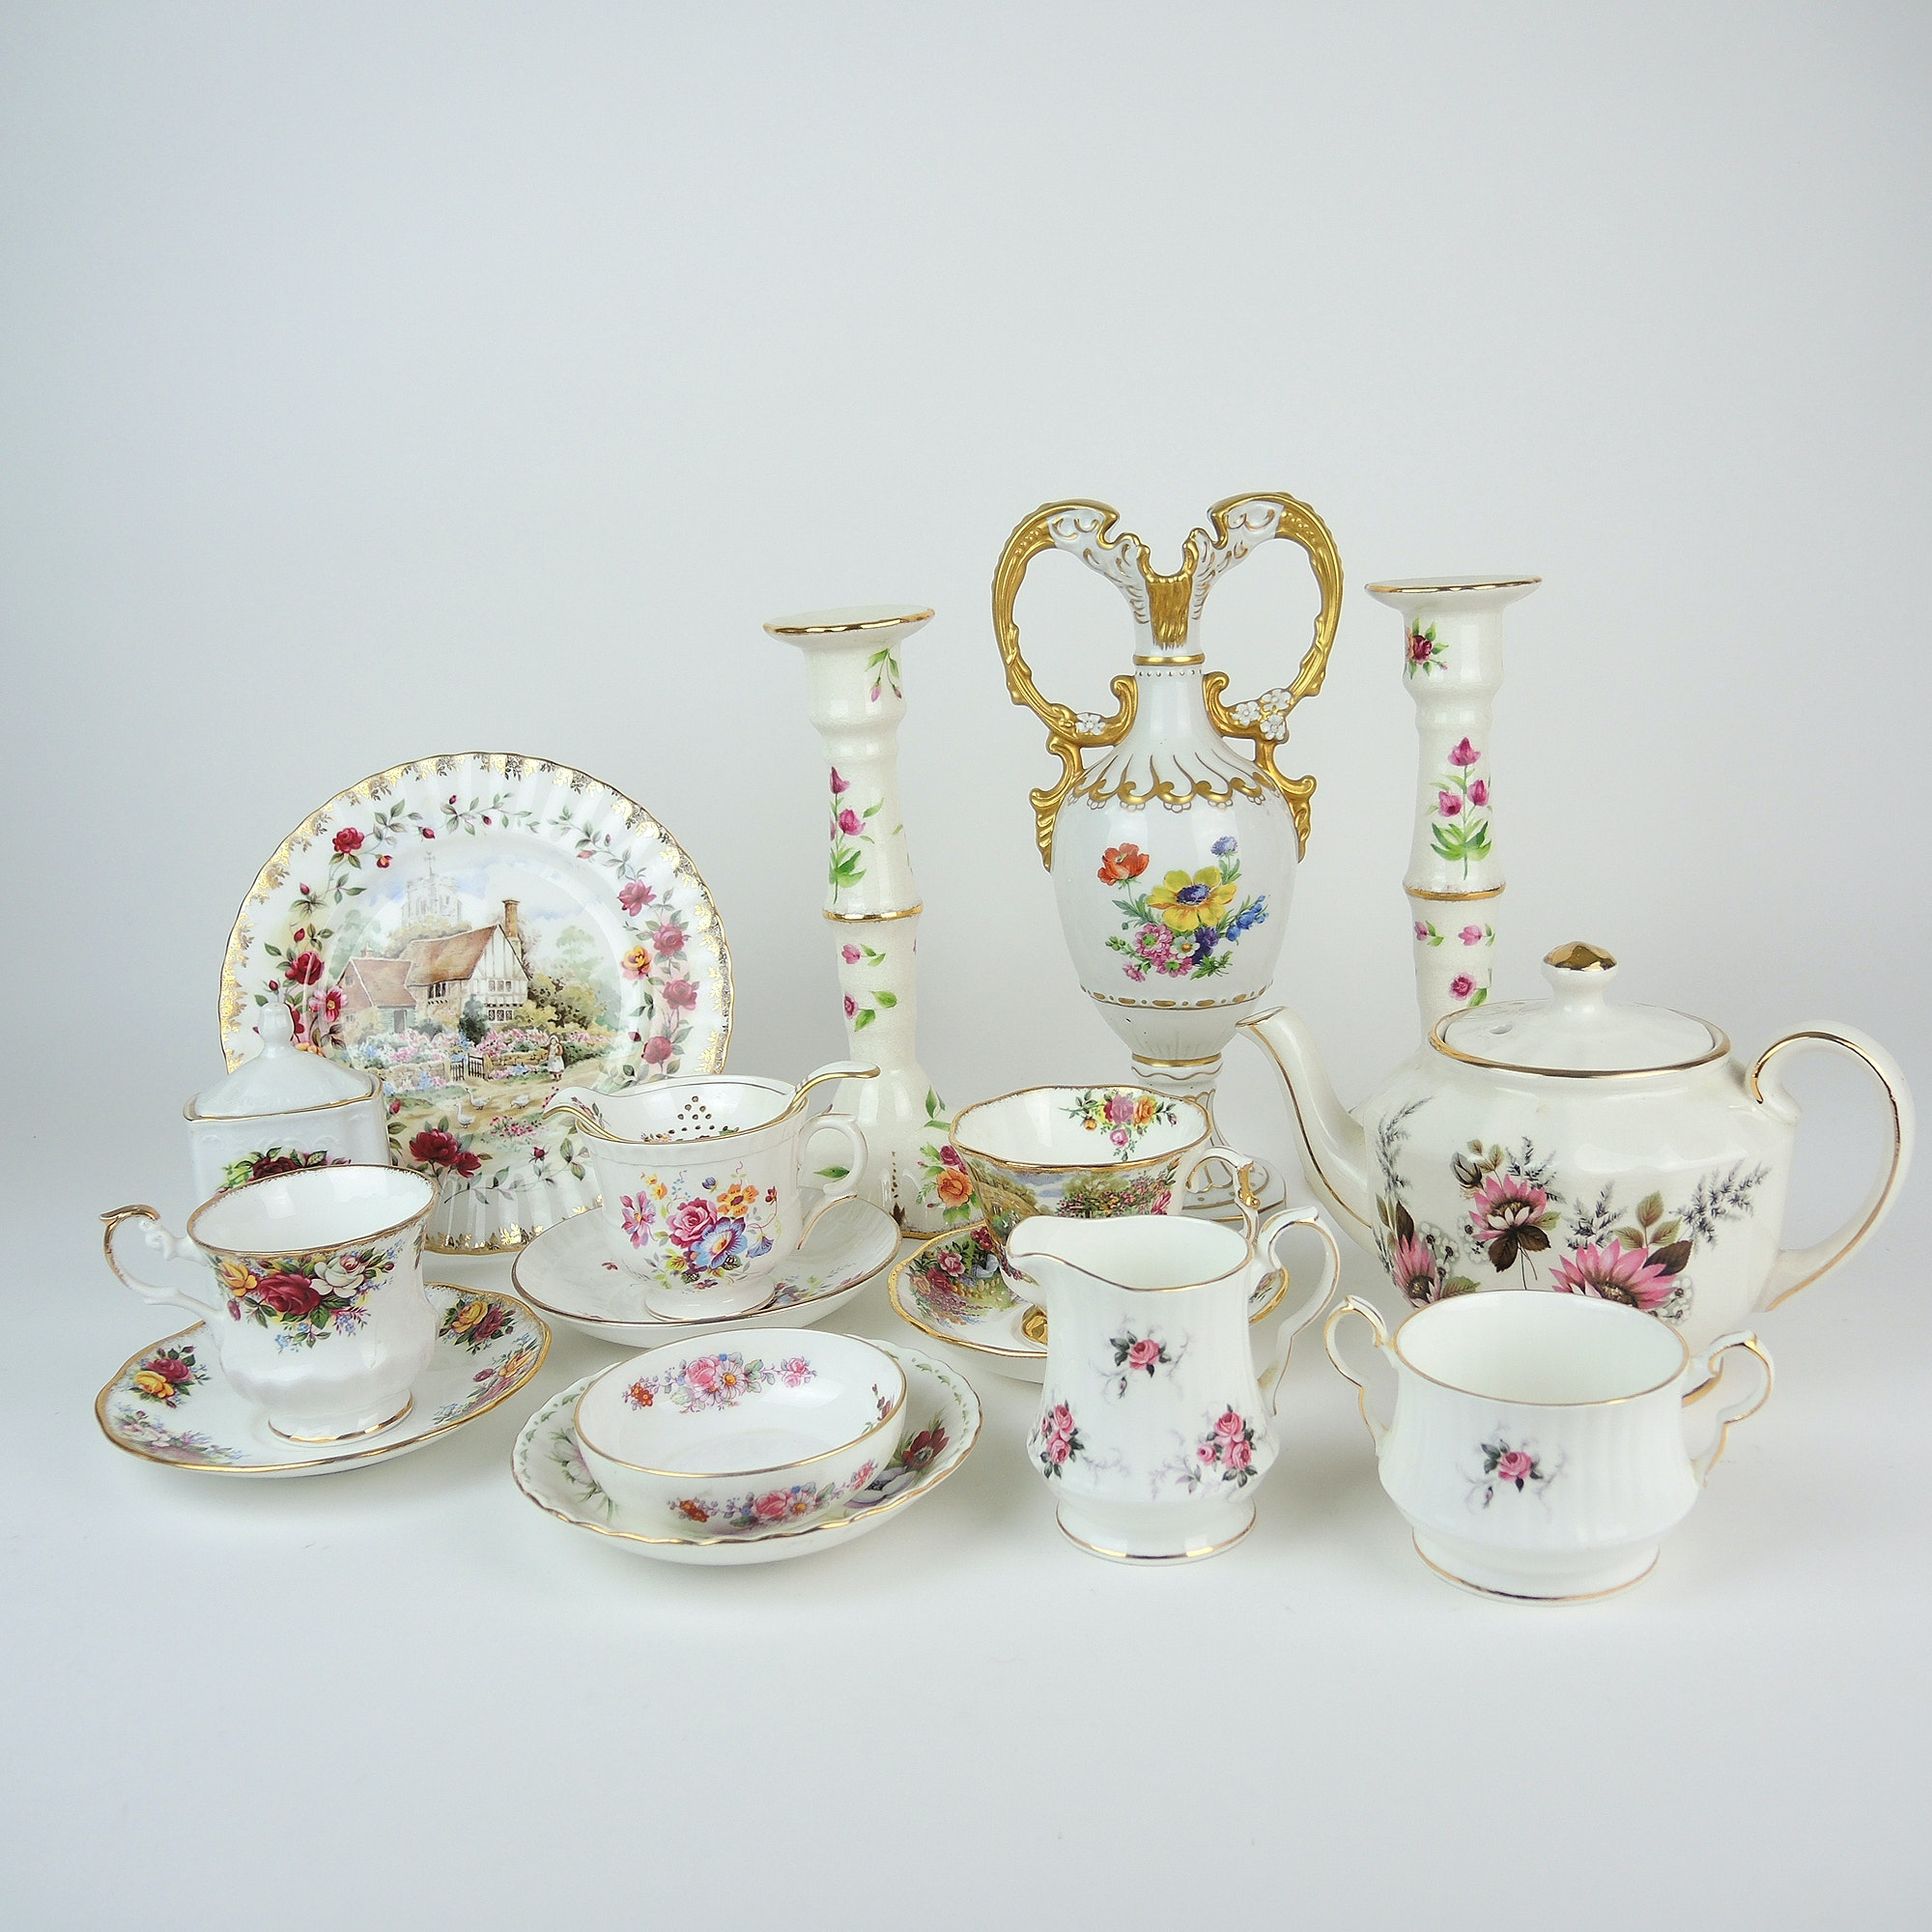 Porcelain Tableware and China Featuring Royal Dux